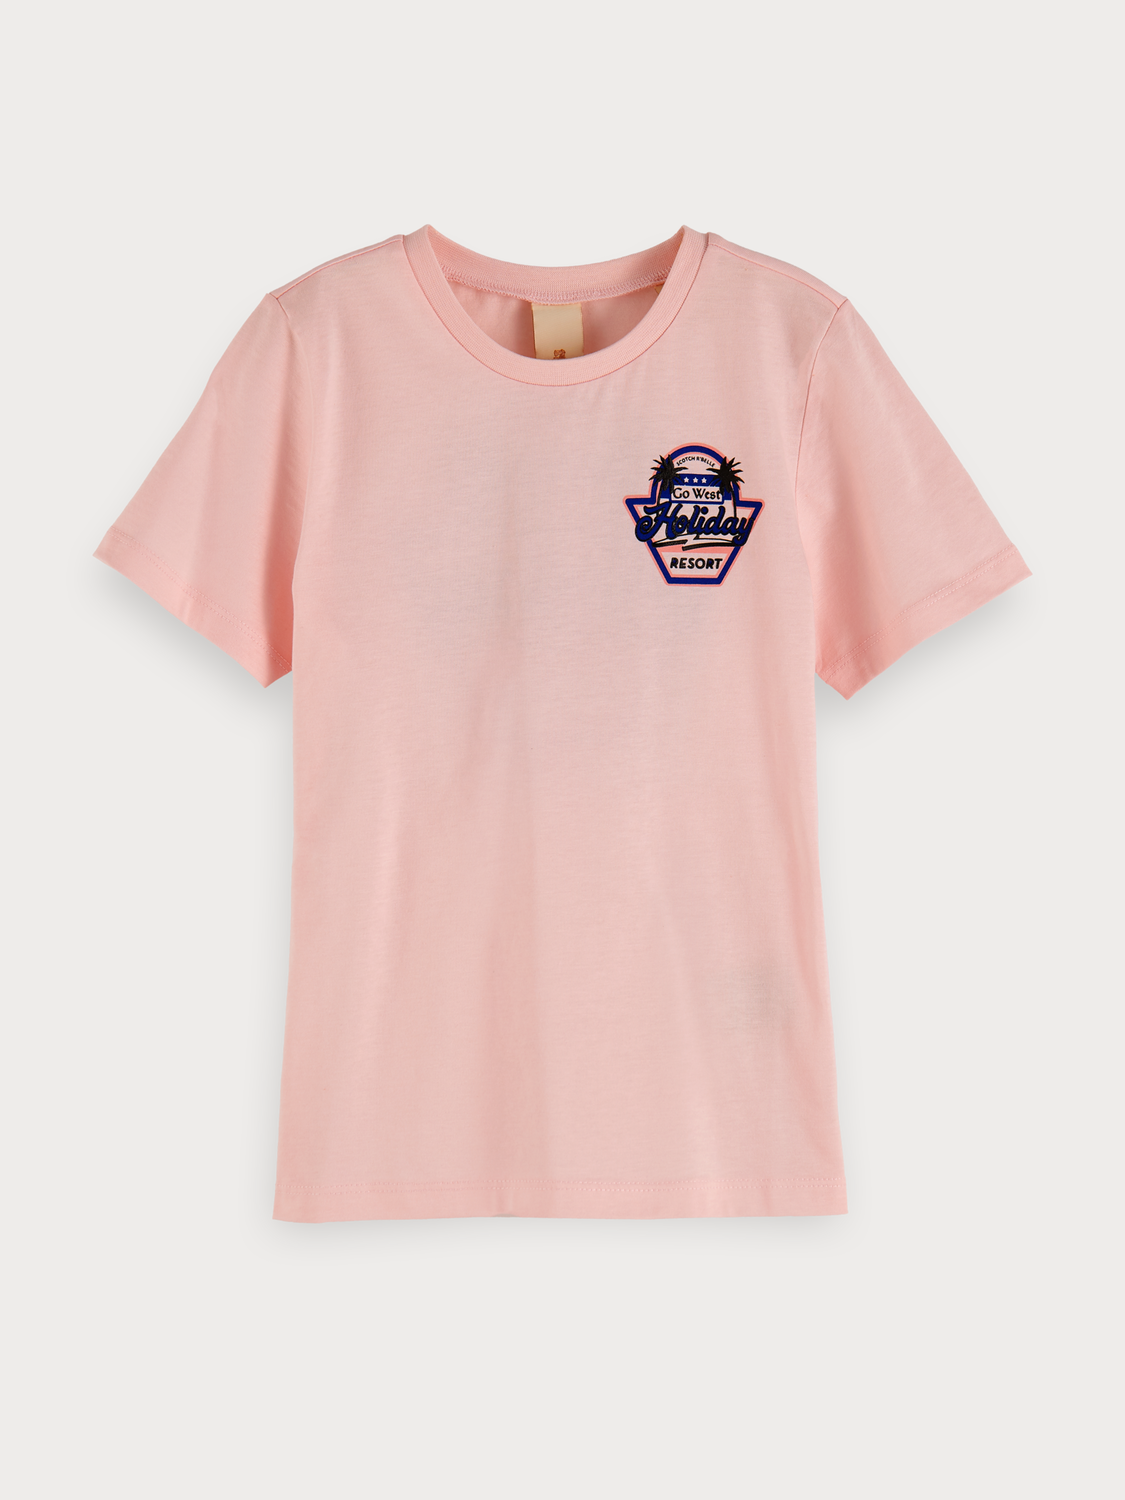 Girls Cotton Artwork T-Shirt